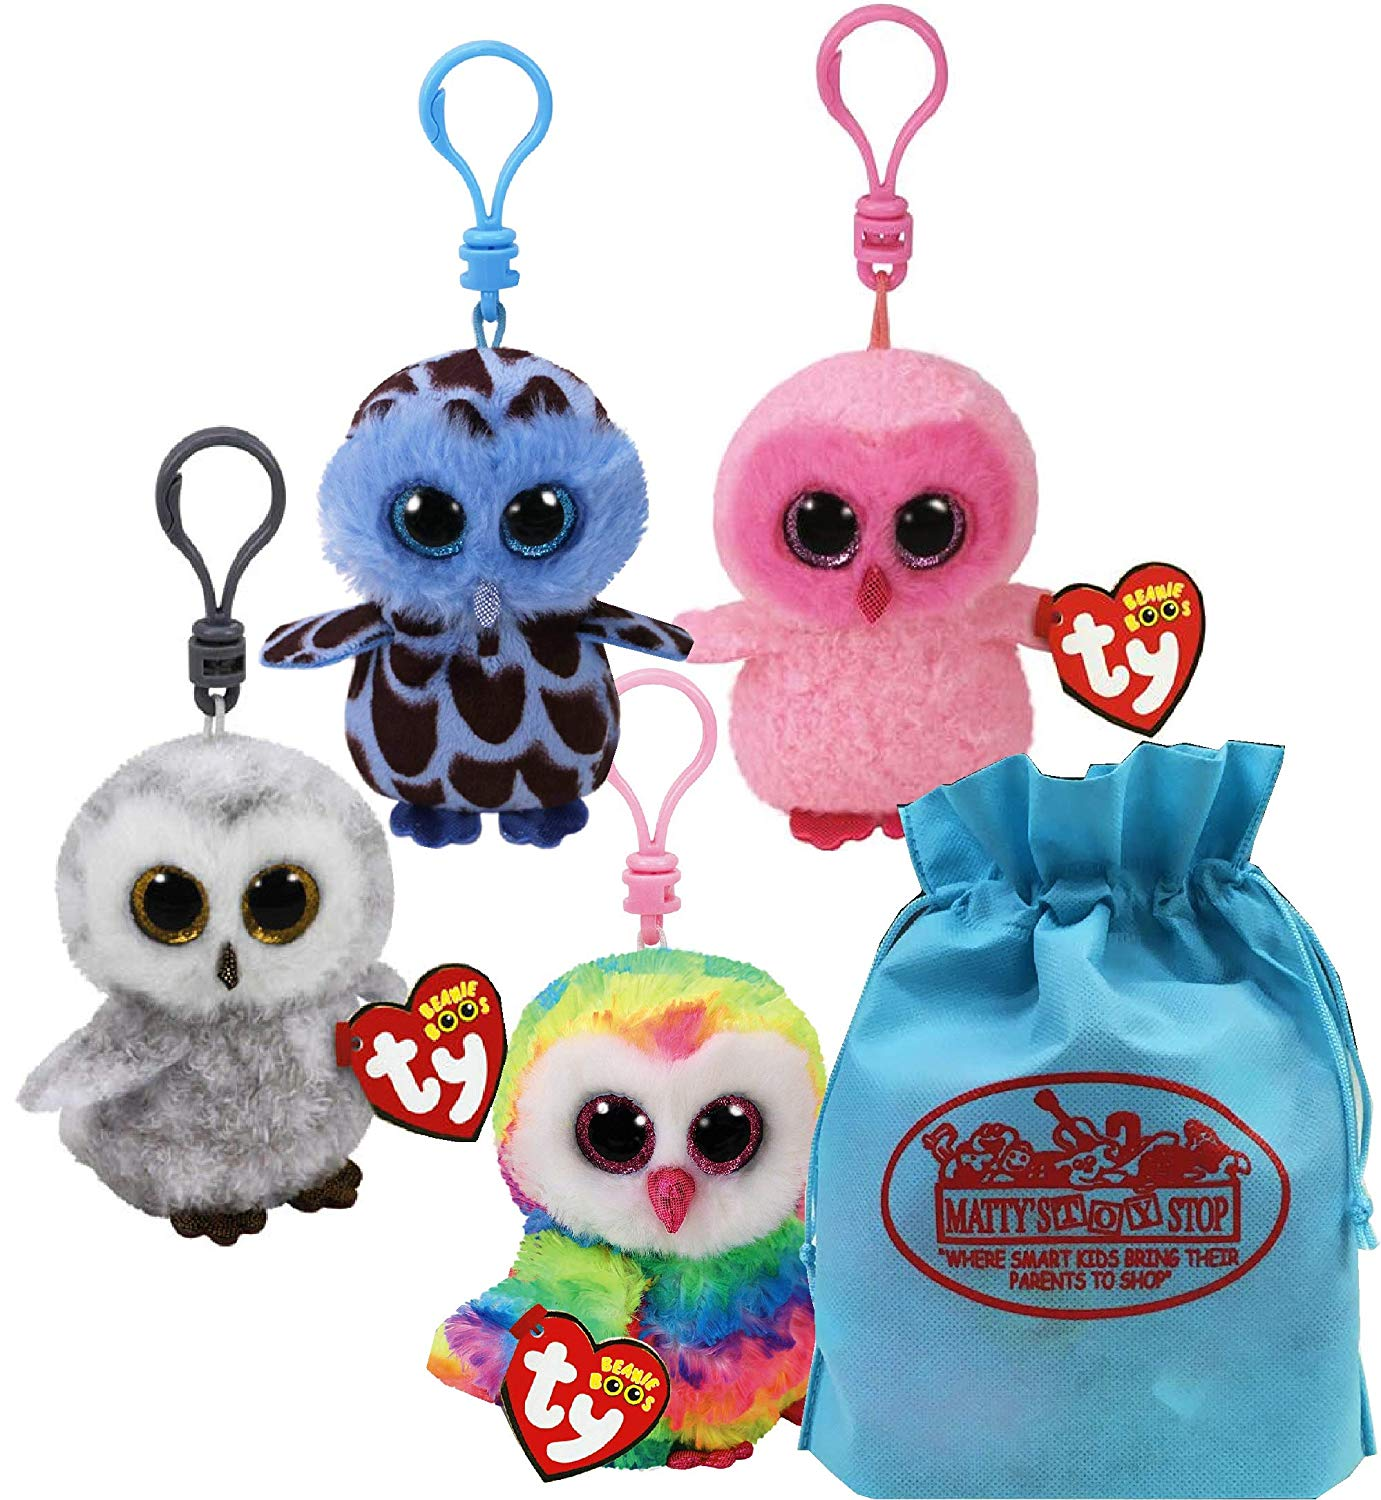 "Ty Beanie Boos Clips (3"") Owls Yago, Owen, Twiggy & Owlette Gift Set Bundle with Bonus Matty's Toy Stop Storage Bag - 4 Pack"